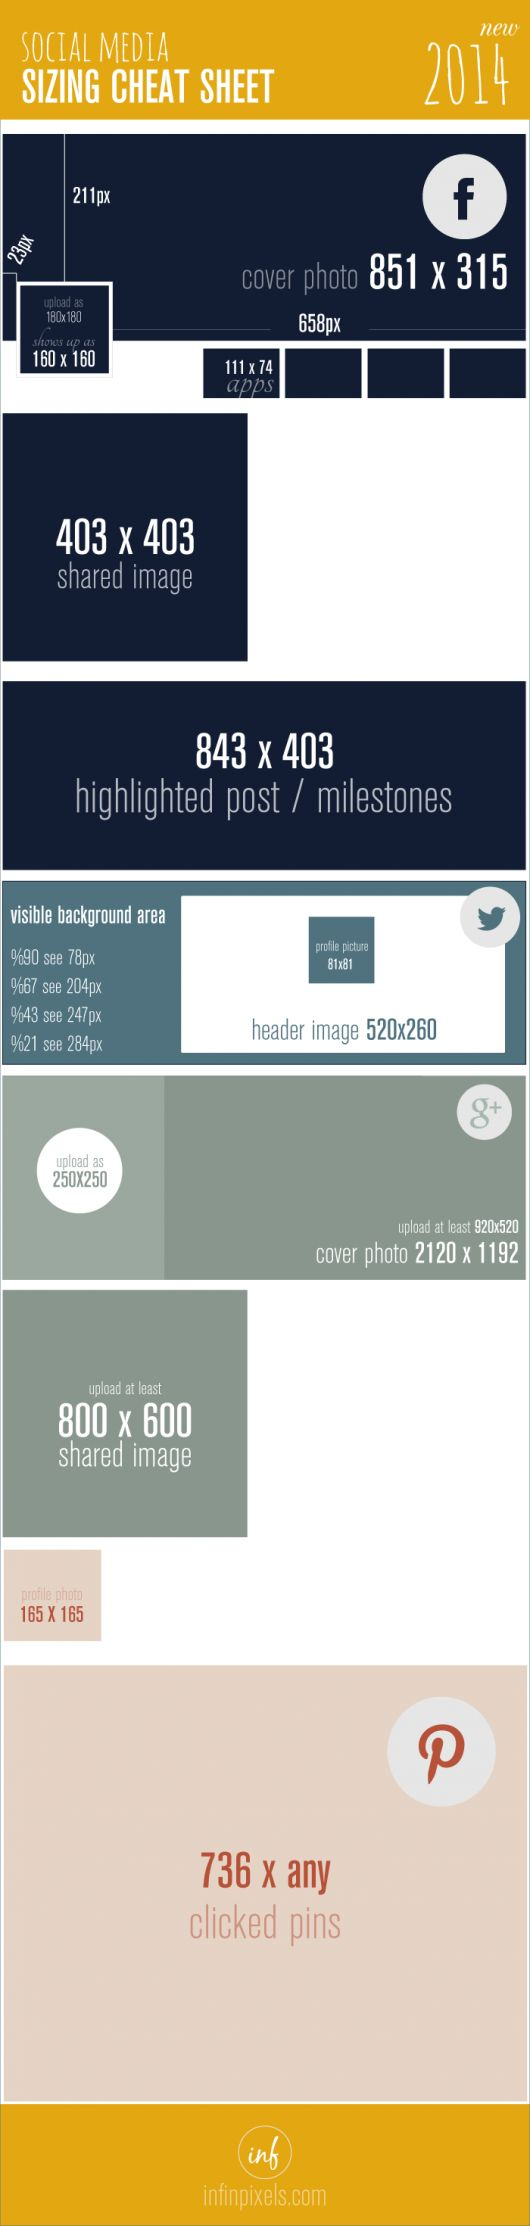 49 best Infographics images on Pinterest | Infographic, Info ...